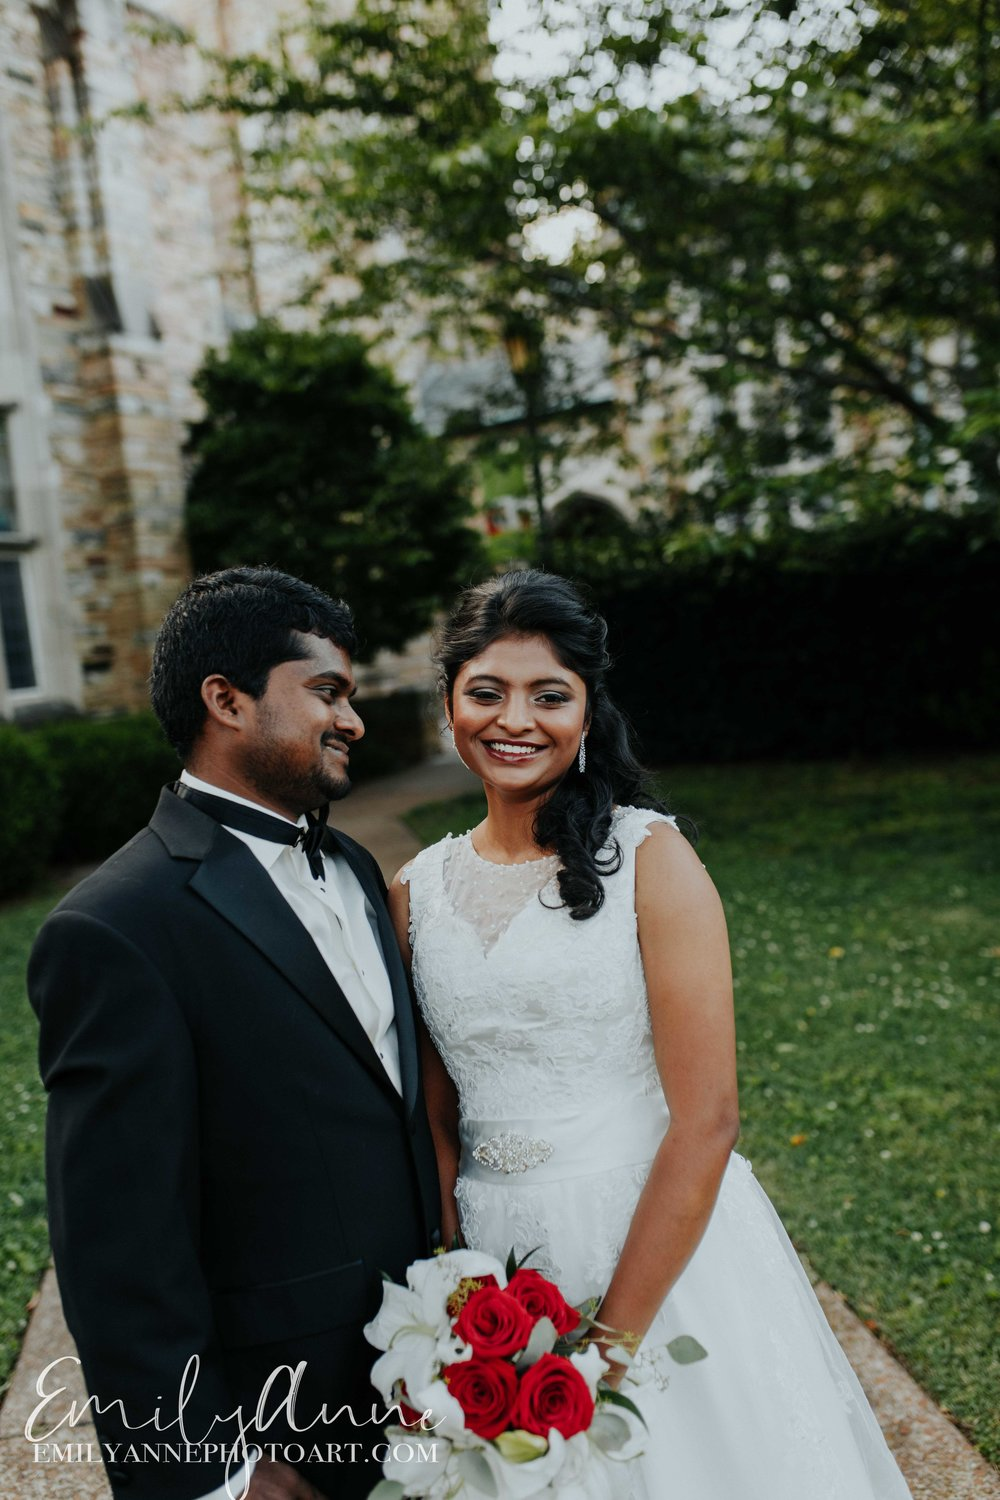 Top Indian Wedding Photographer in Nashville TN and Birmingham Alabama Emily Anne Photo Art